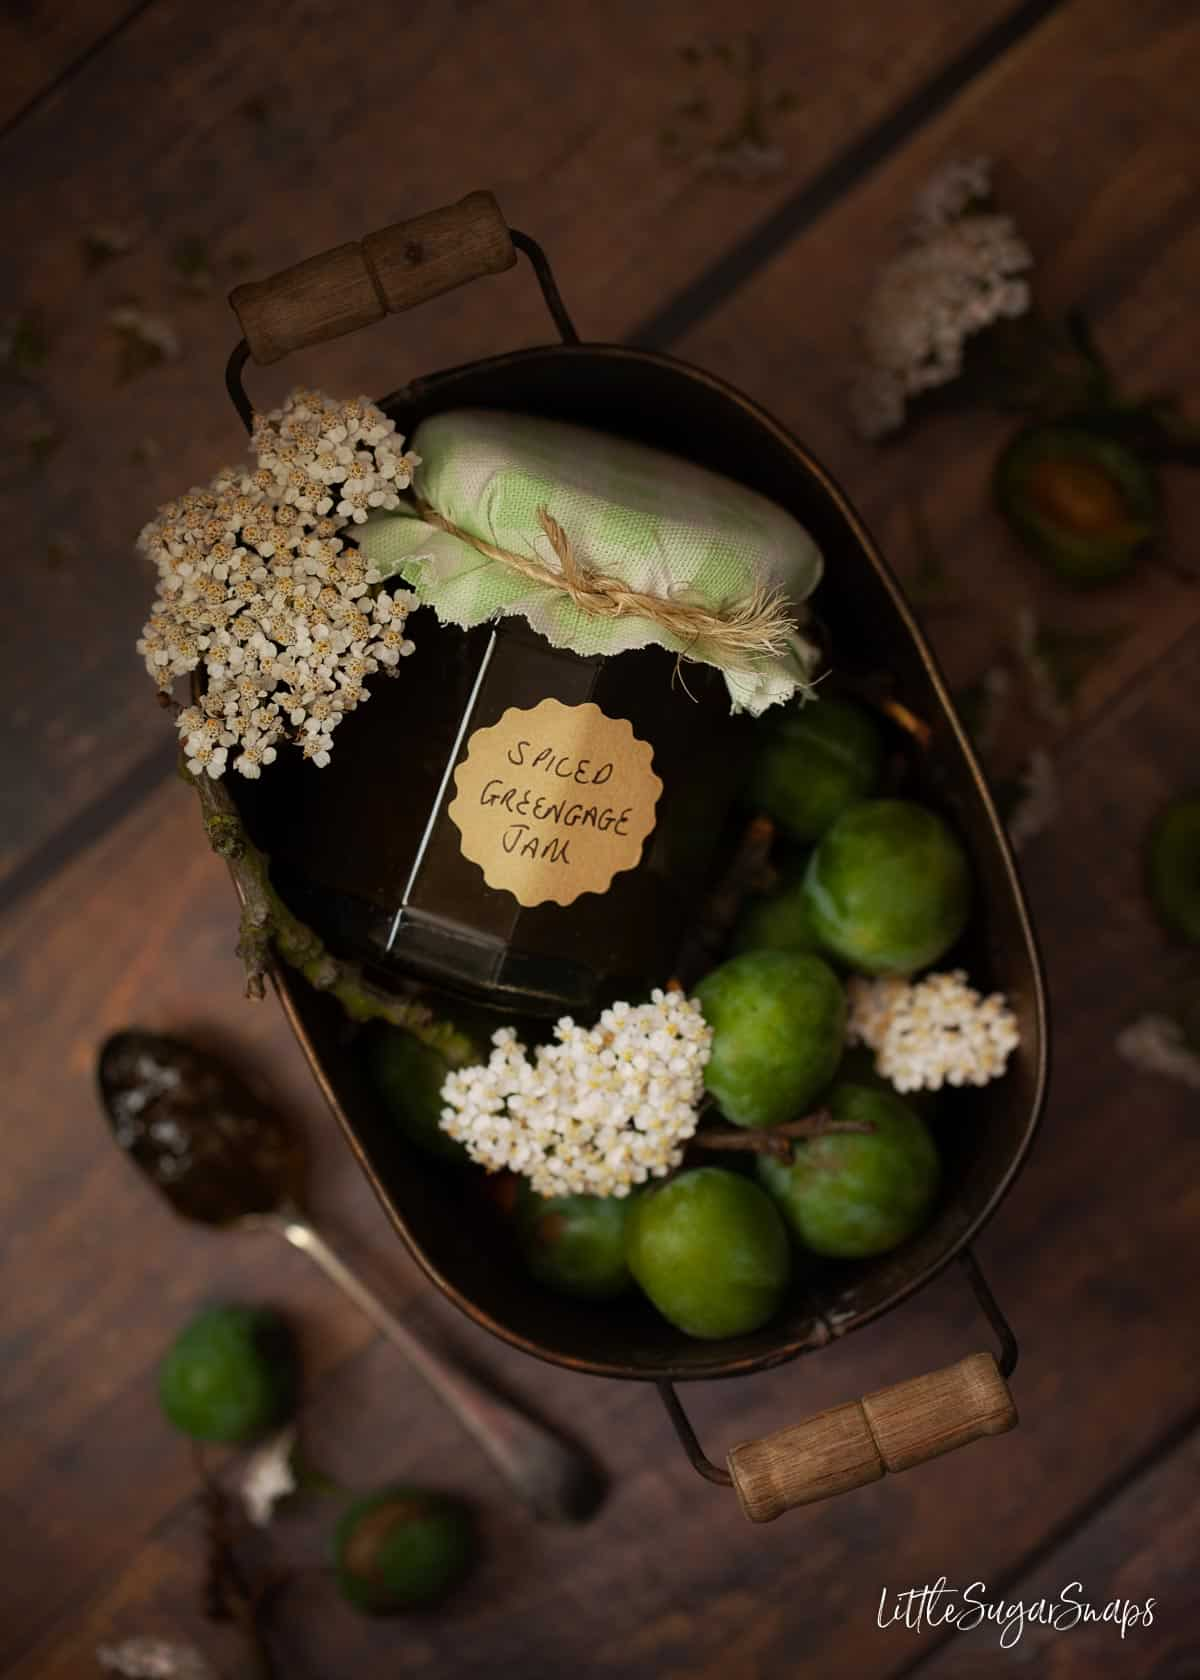 A tin caddy holding a jar of greengage jam and fresh greengages